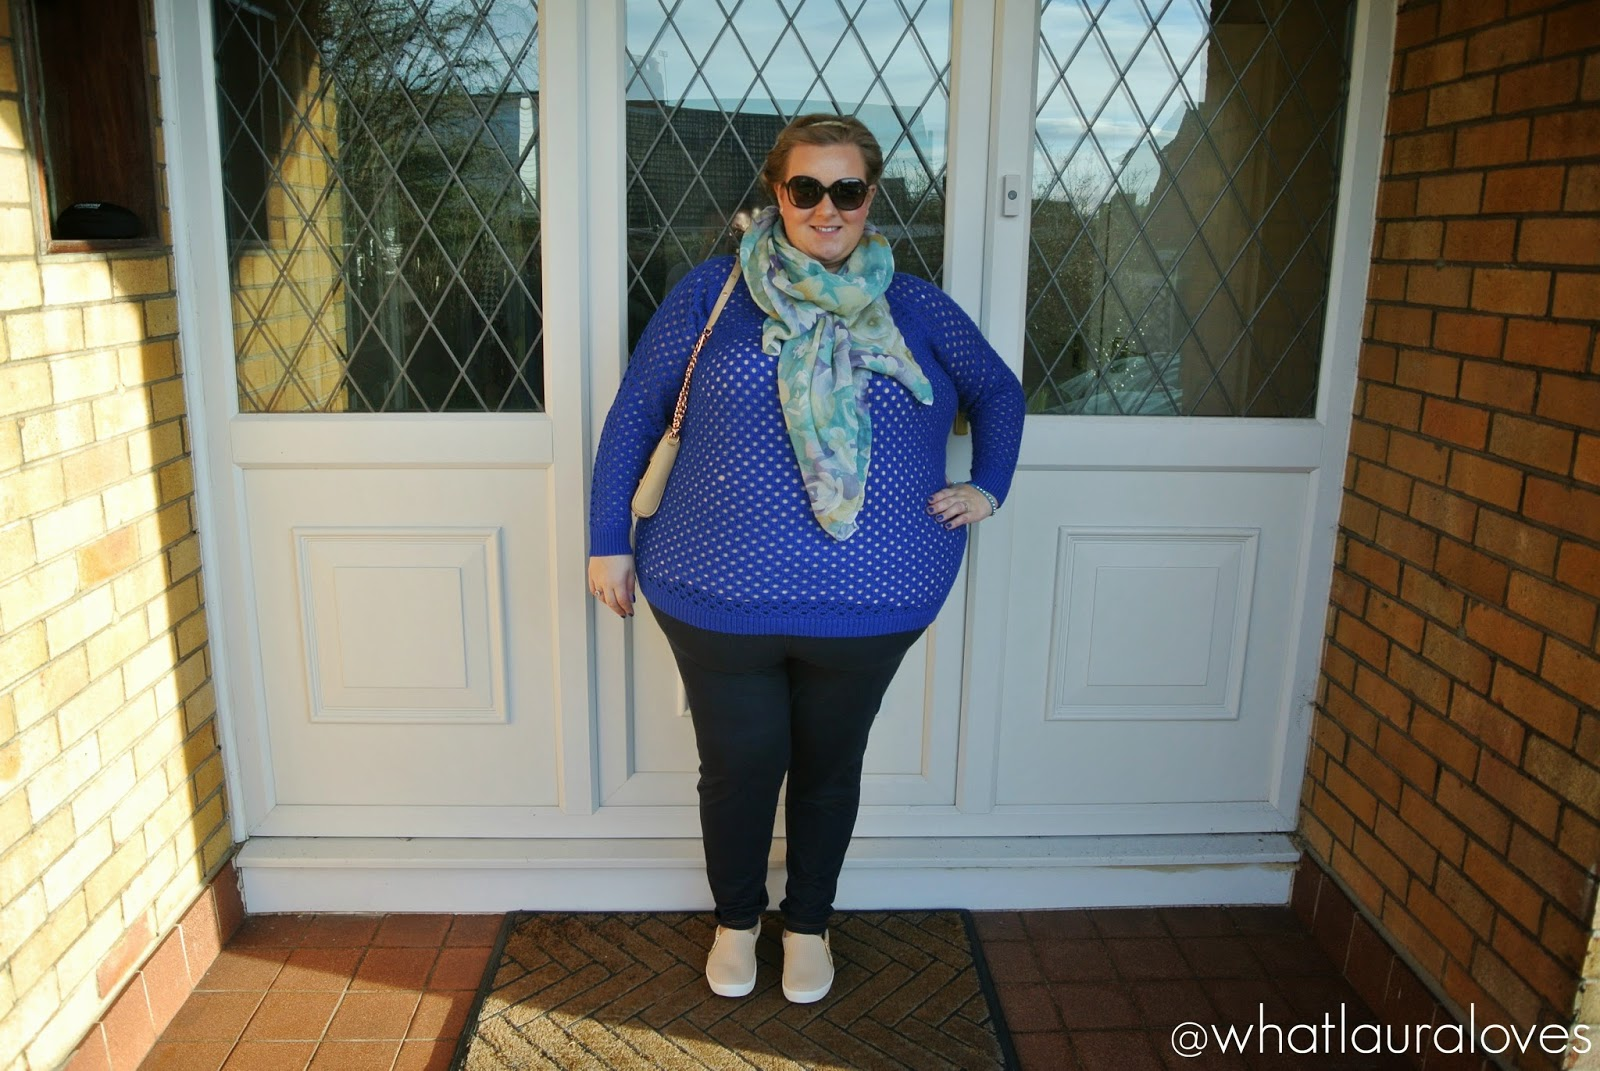 plus size fashion blogger from the uk